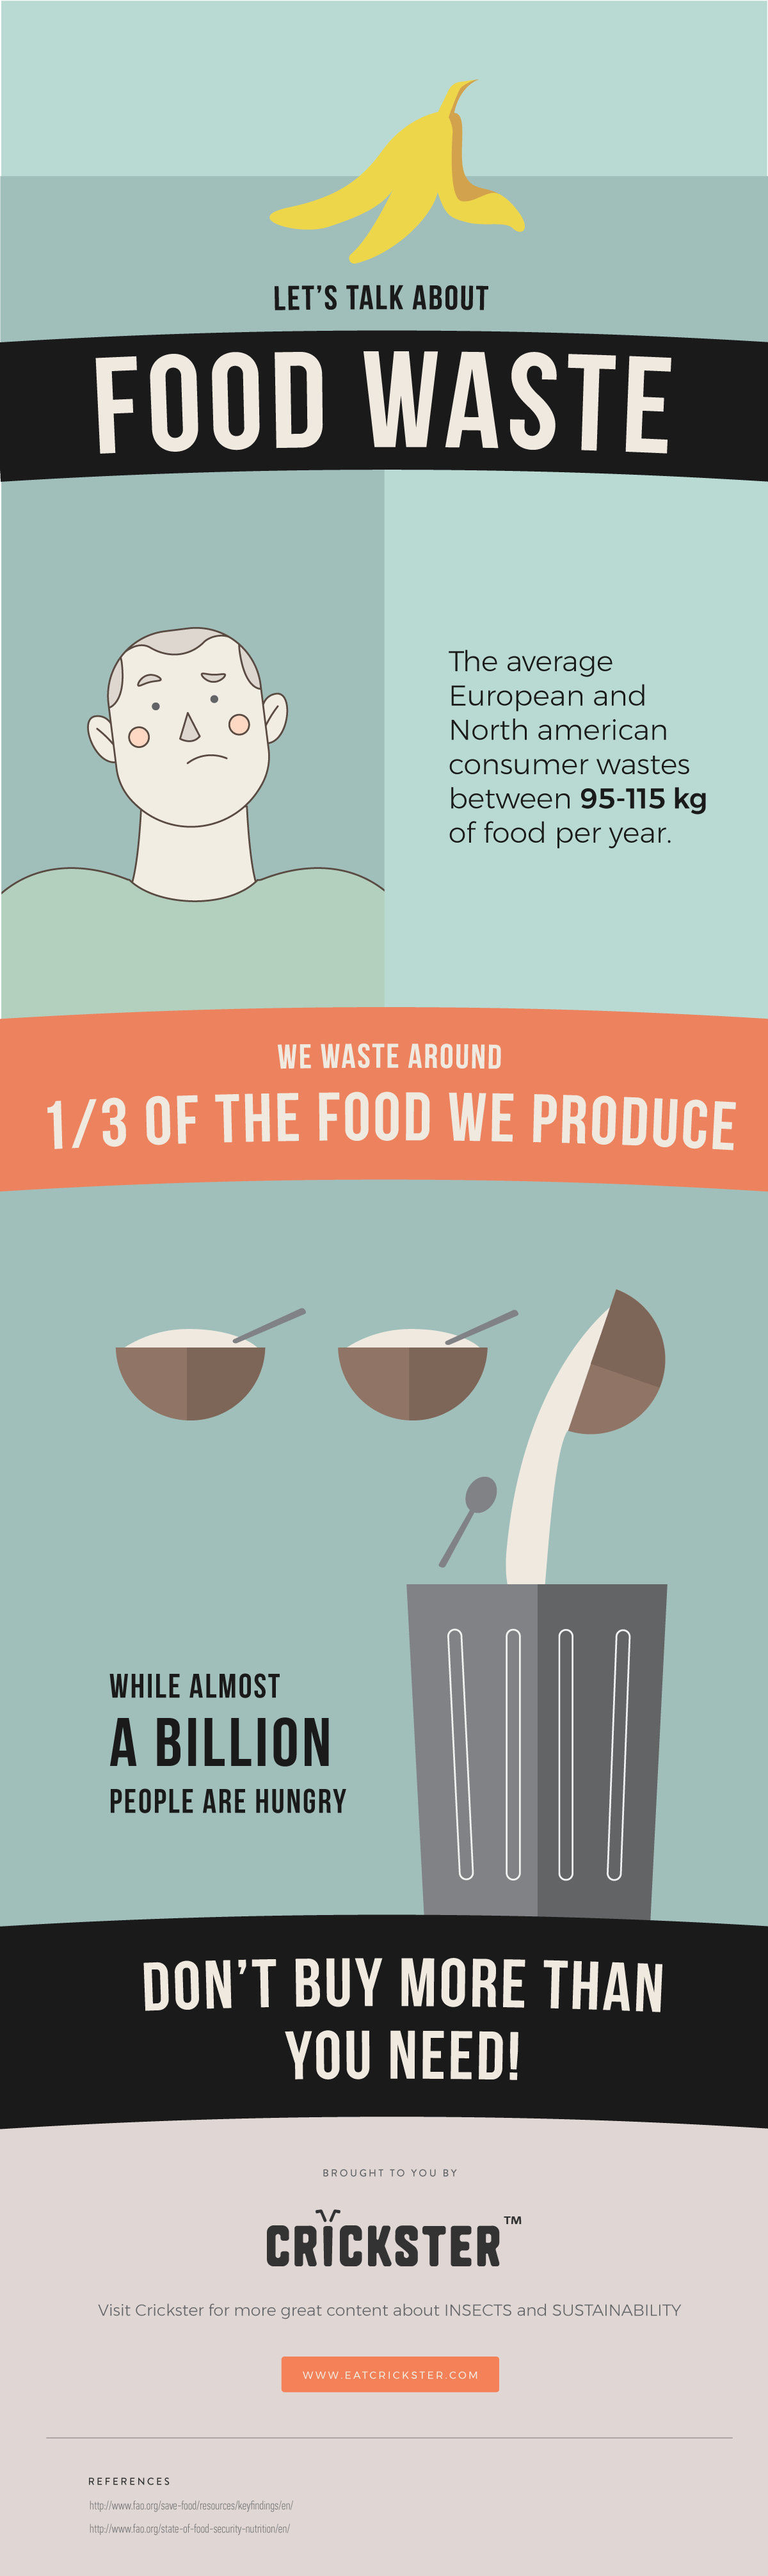 Food waste infographic: roughly one third of the food we produce gets wasted